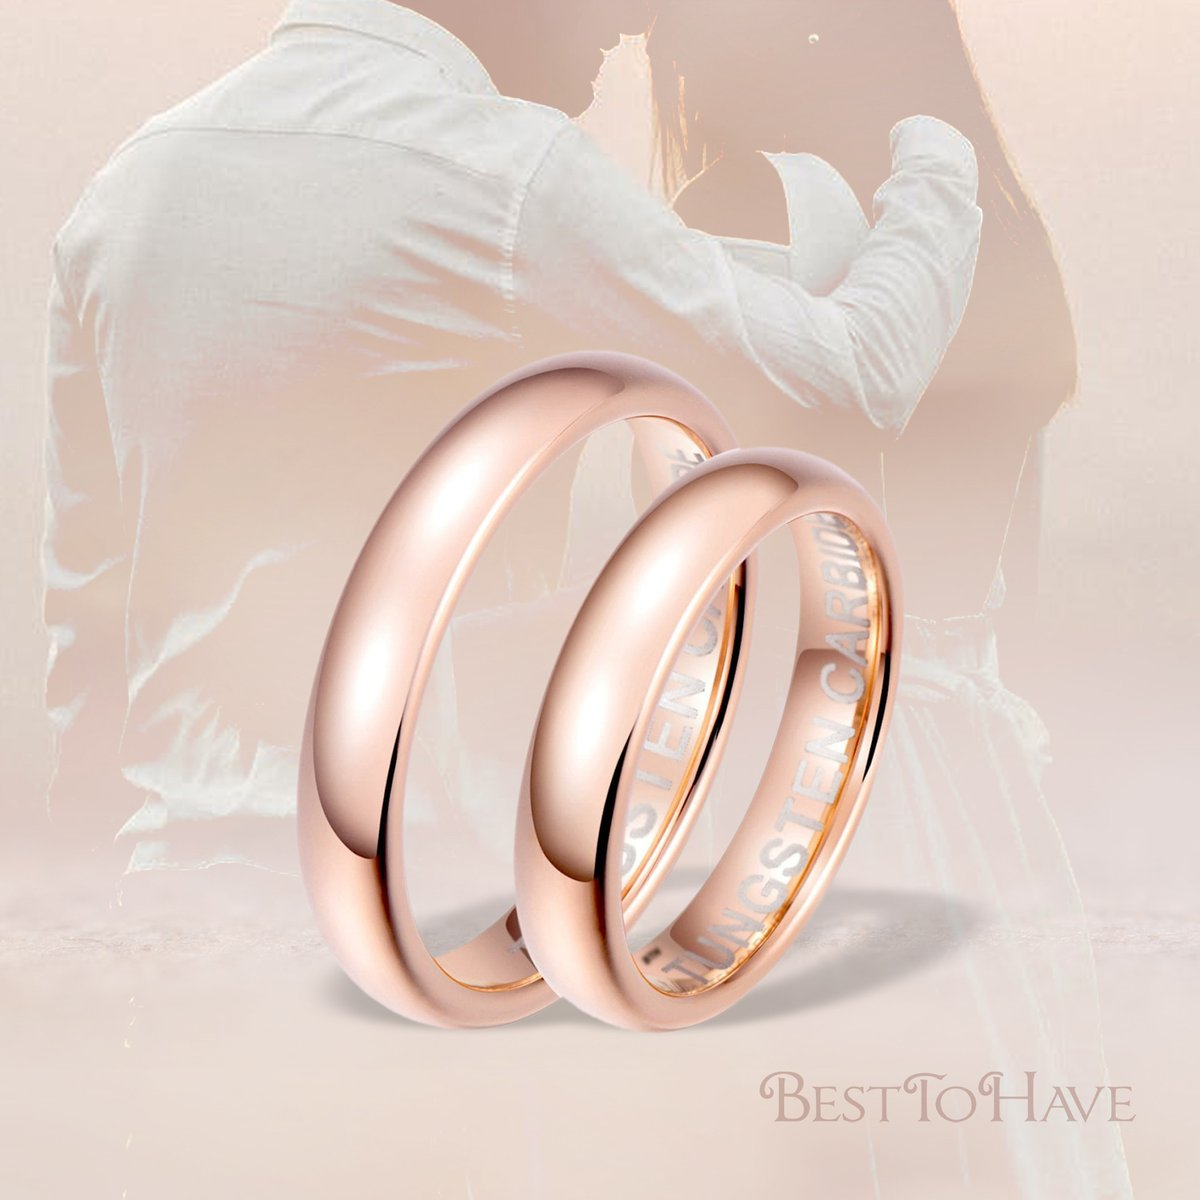 To celebrate those special moments! Code: 490 £39.99 Shop more:  #besttohave #besttohavejewelry #besttohaverings #hisandhers #matchingrings #wedding #engagement #weddingrings #weddinginspiration #sterlingsilver #silverrings #silverjewelry #jewelry